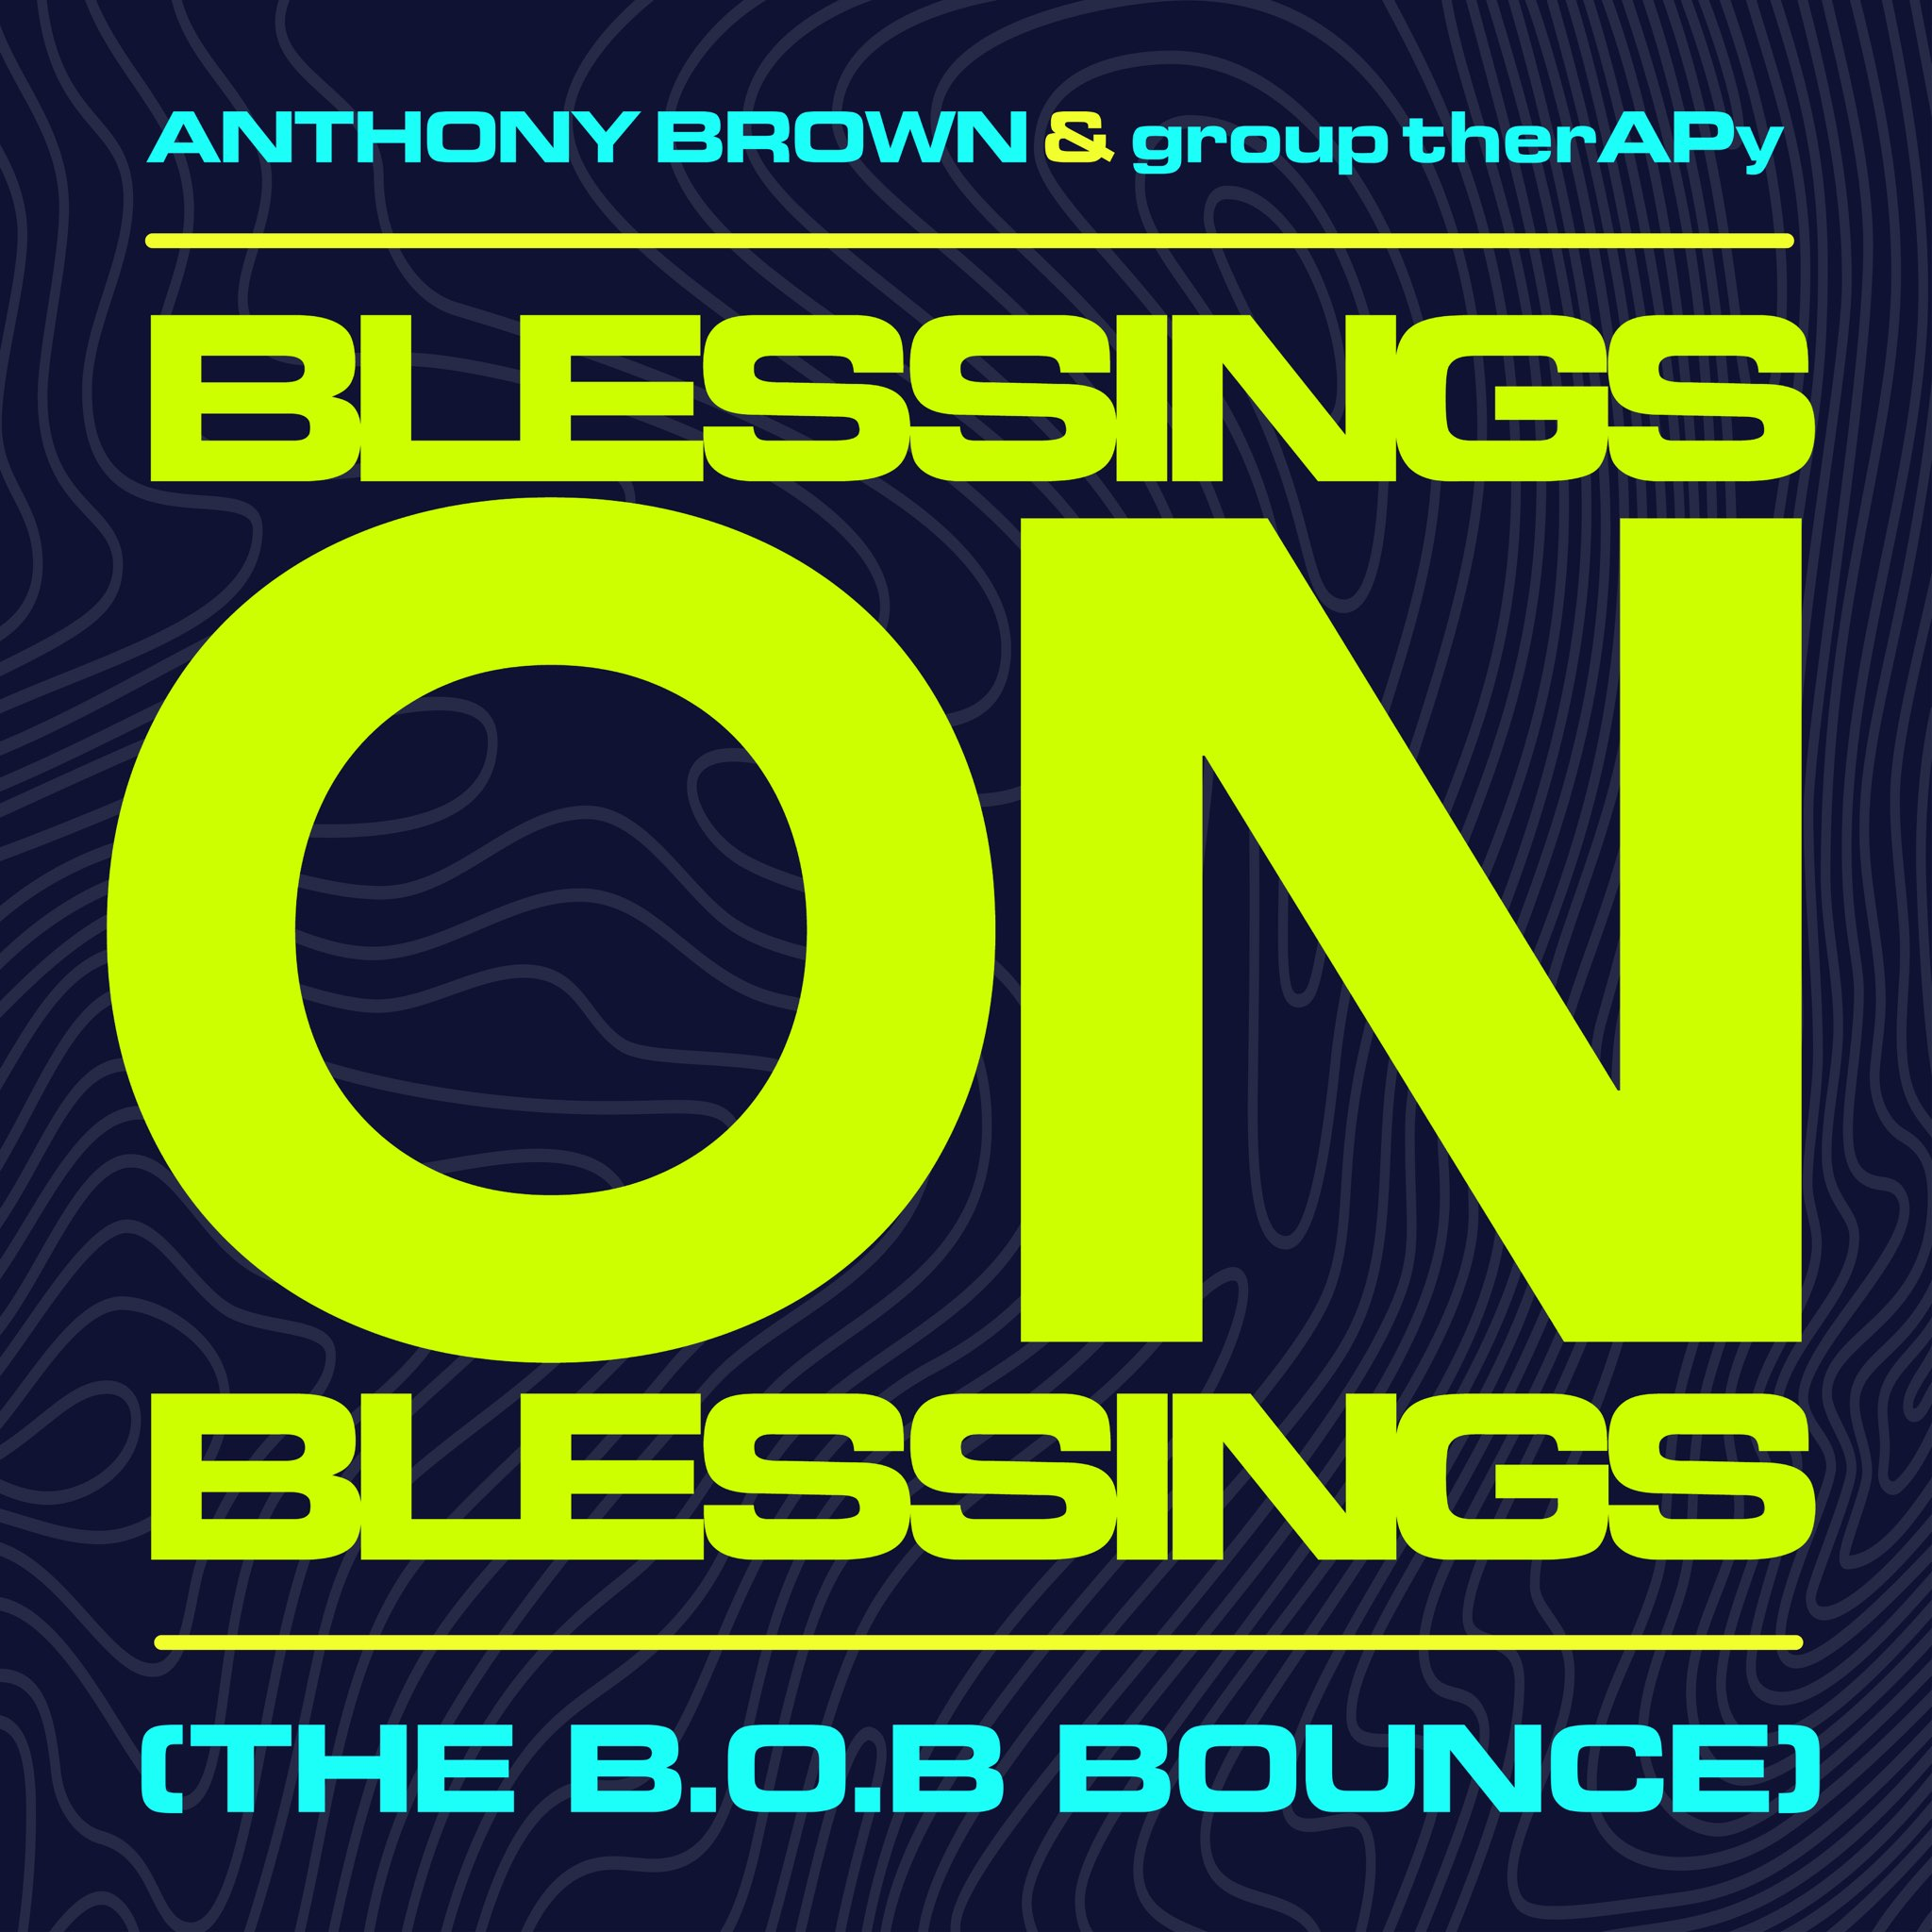 Grammy Nominated Anthony Brown & group therAPy Drops The B.O.B. Bounce Remix WATCH IT NOW!